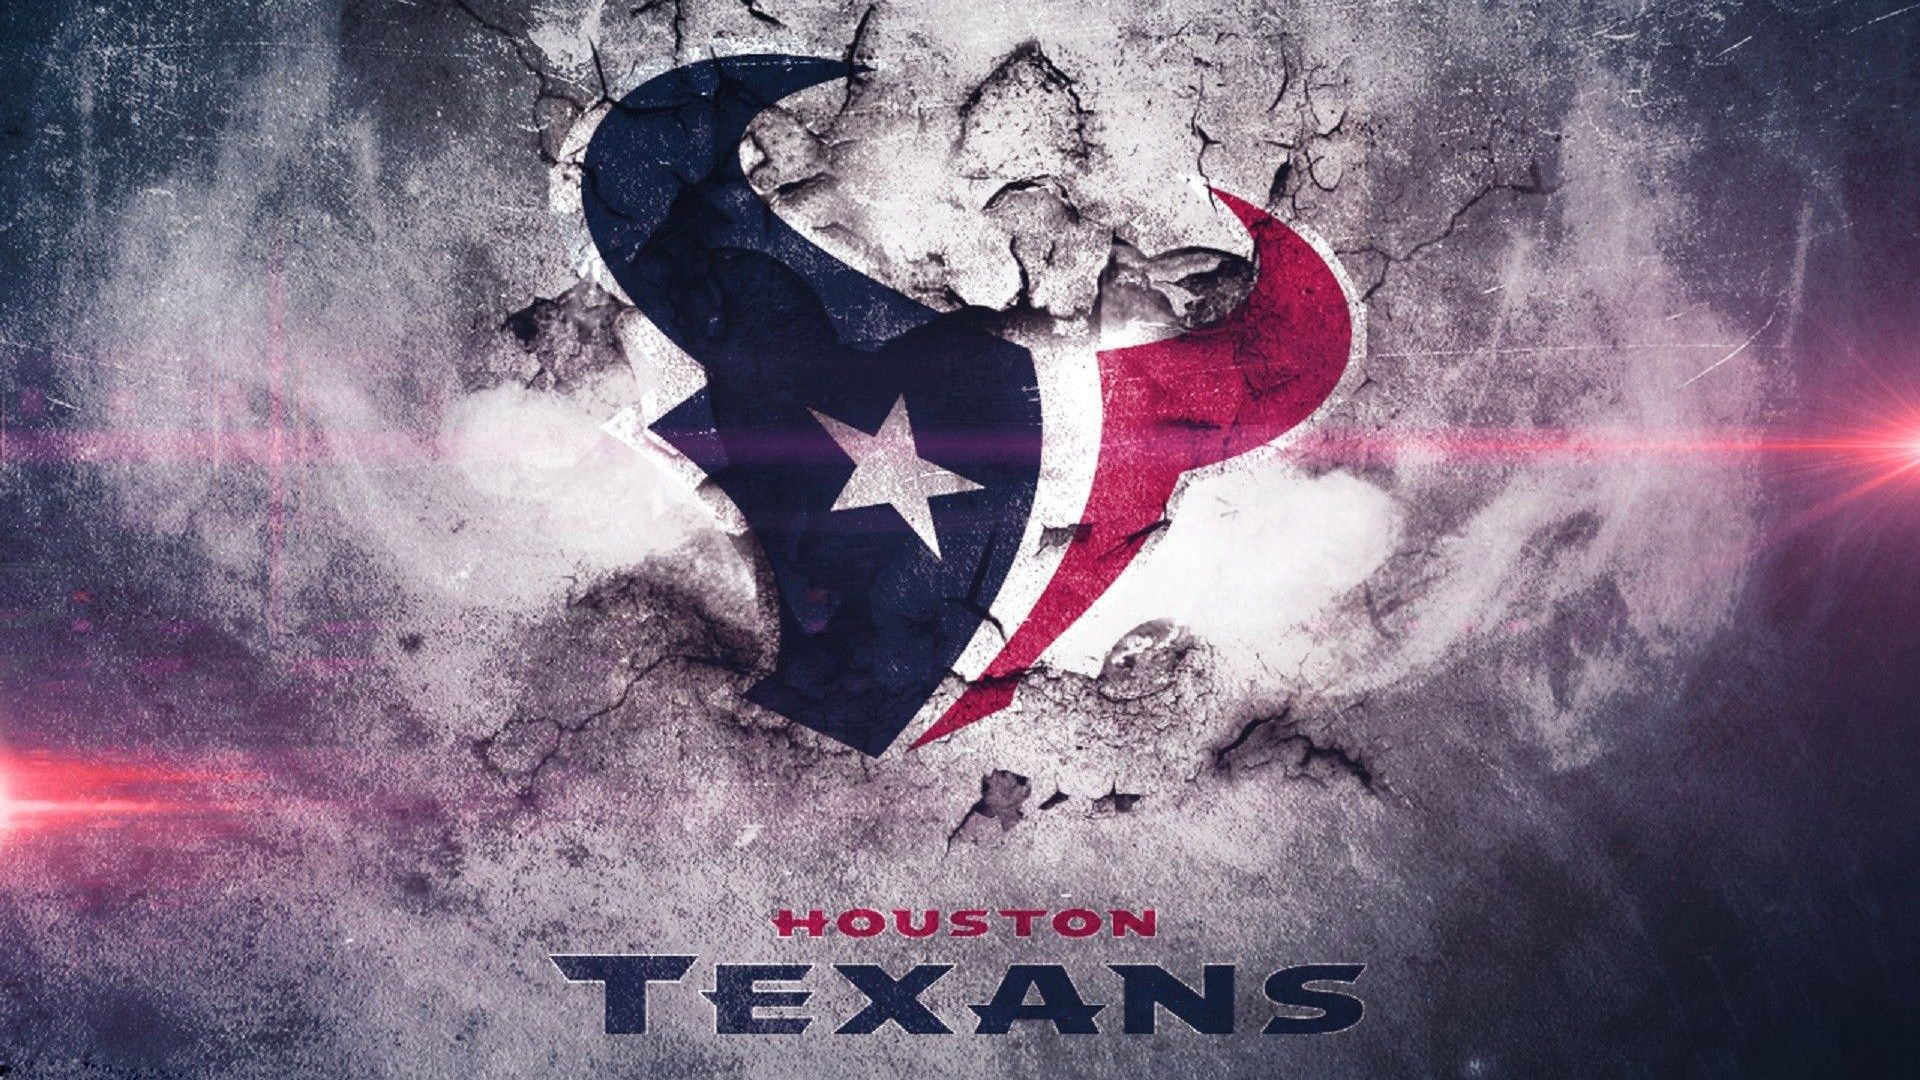 Houston Texans hd picture